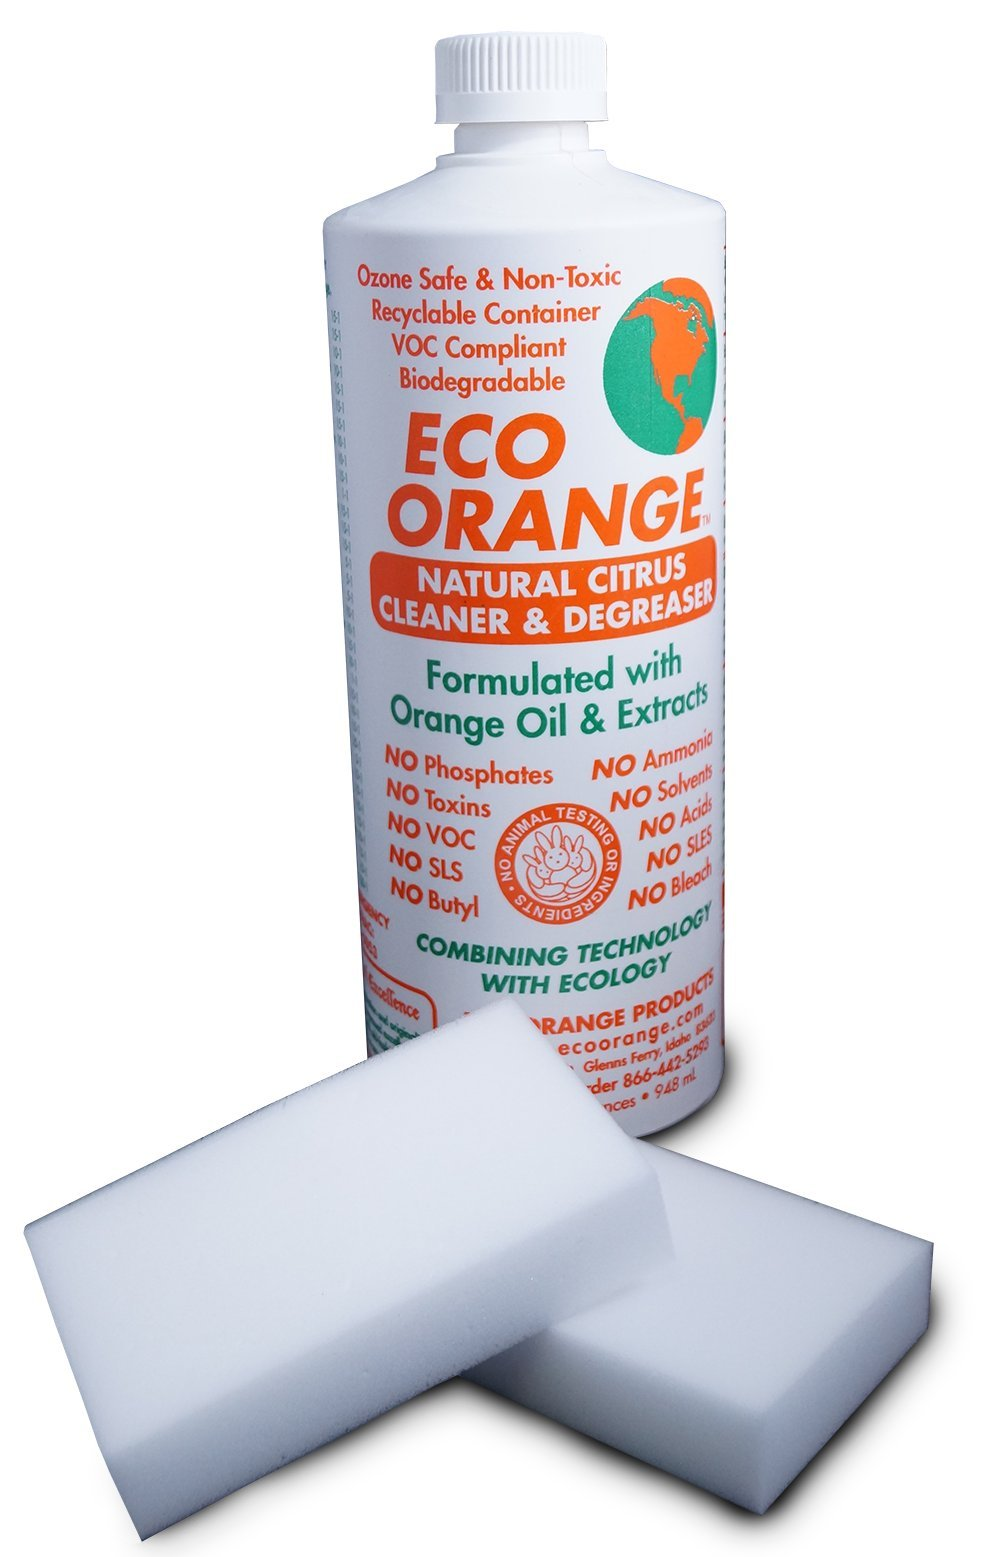 Eco Orange 32-Ounce Concentrate. Strongest All-Natural, All-Purpose Orange-Based Cleaner. Makes 3-4 GALLONS after dilution. Non-Toxic, Allergy-Free, Eco-Friendly. Safe for Family and Pets.